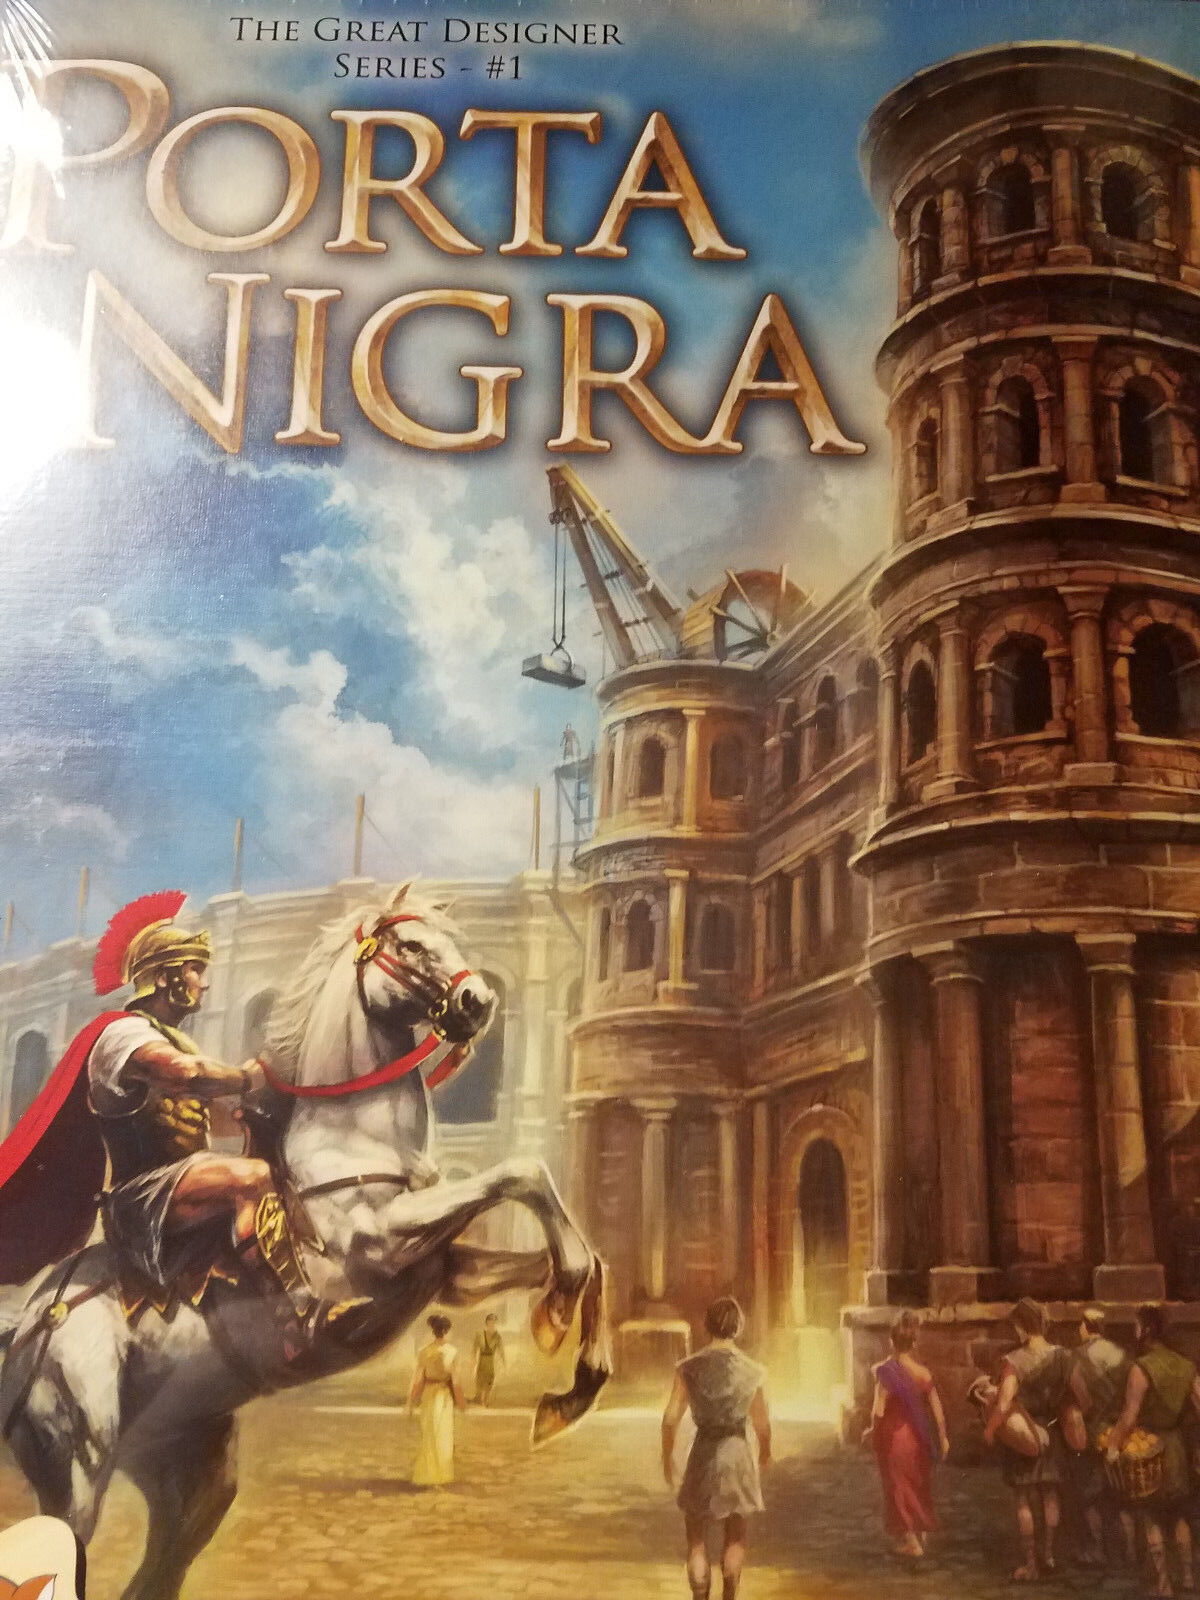 Porta Nigra - Stronghold Games Board Game New  Great Game Designers Series